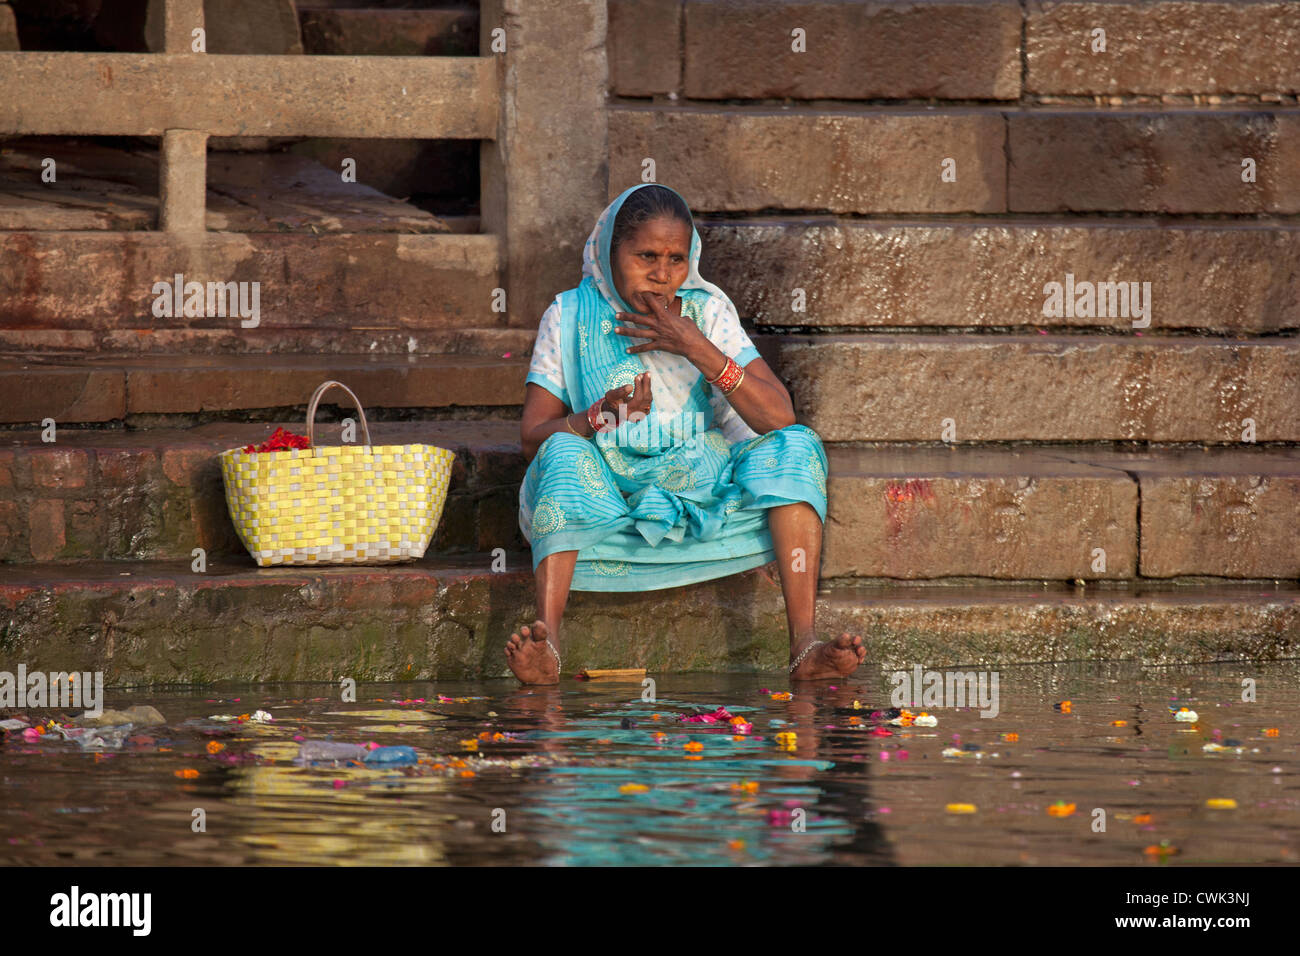 Old Indian woman cleaning her teeth with finger in dirty polluted water of the Ganges river at Varanasi, Uttar Pradesh, - Stock Image